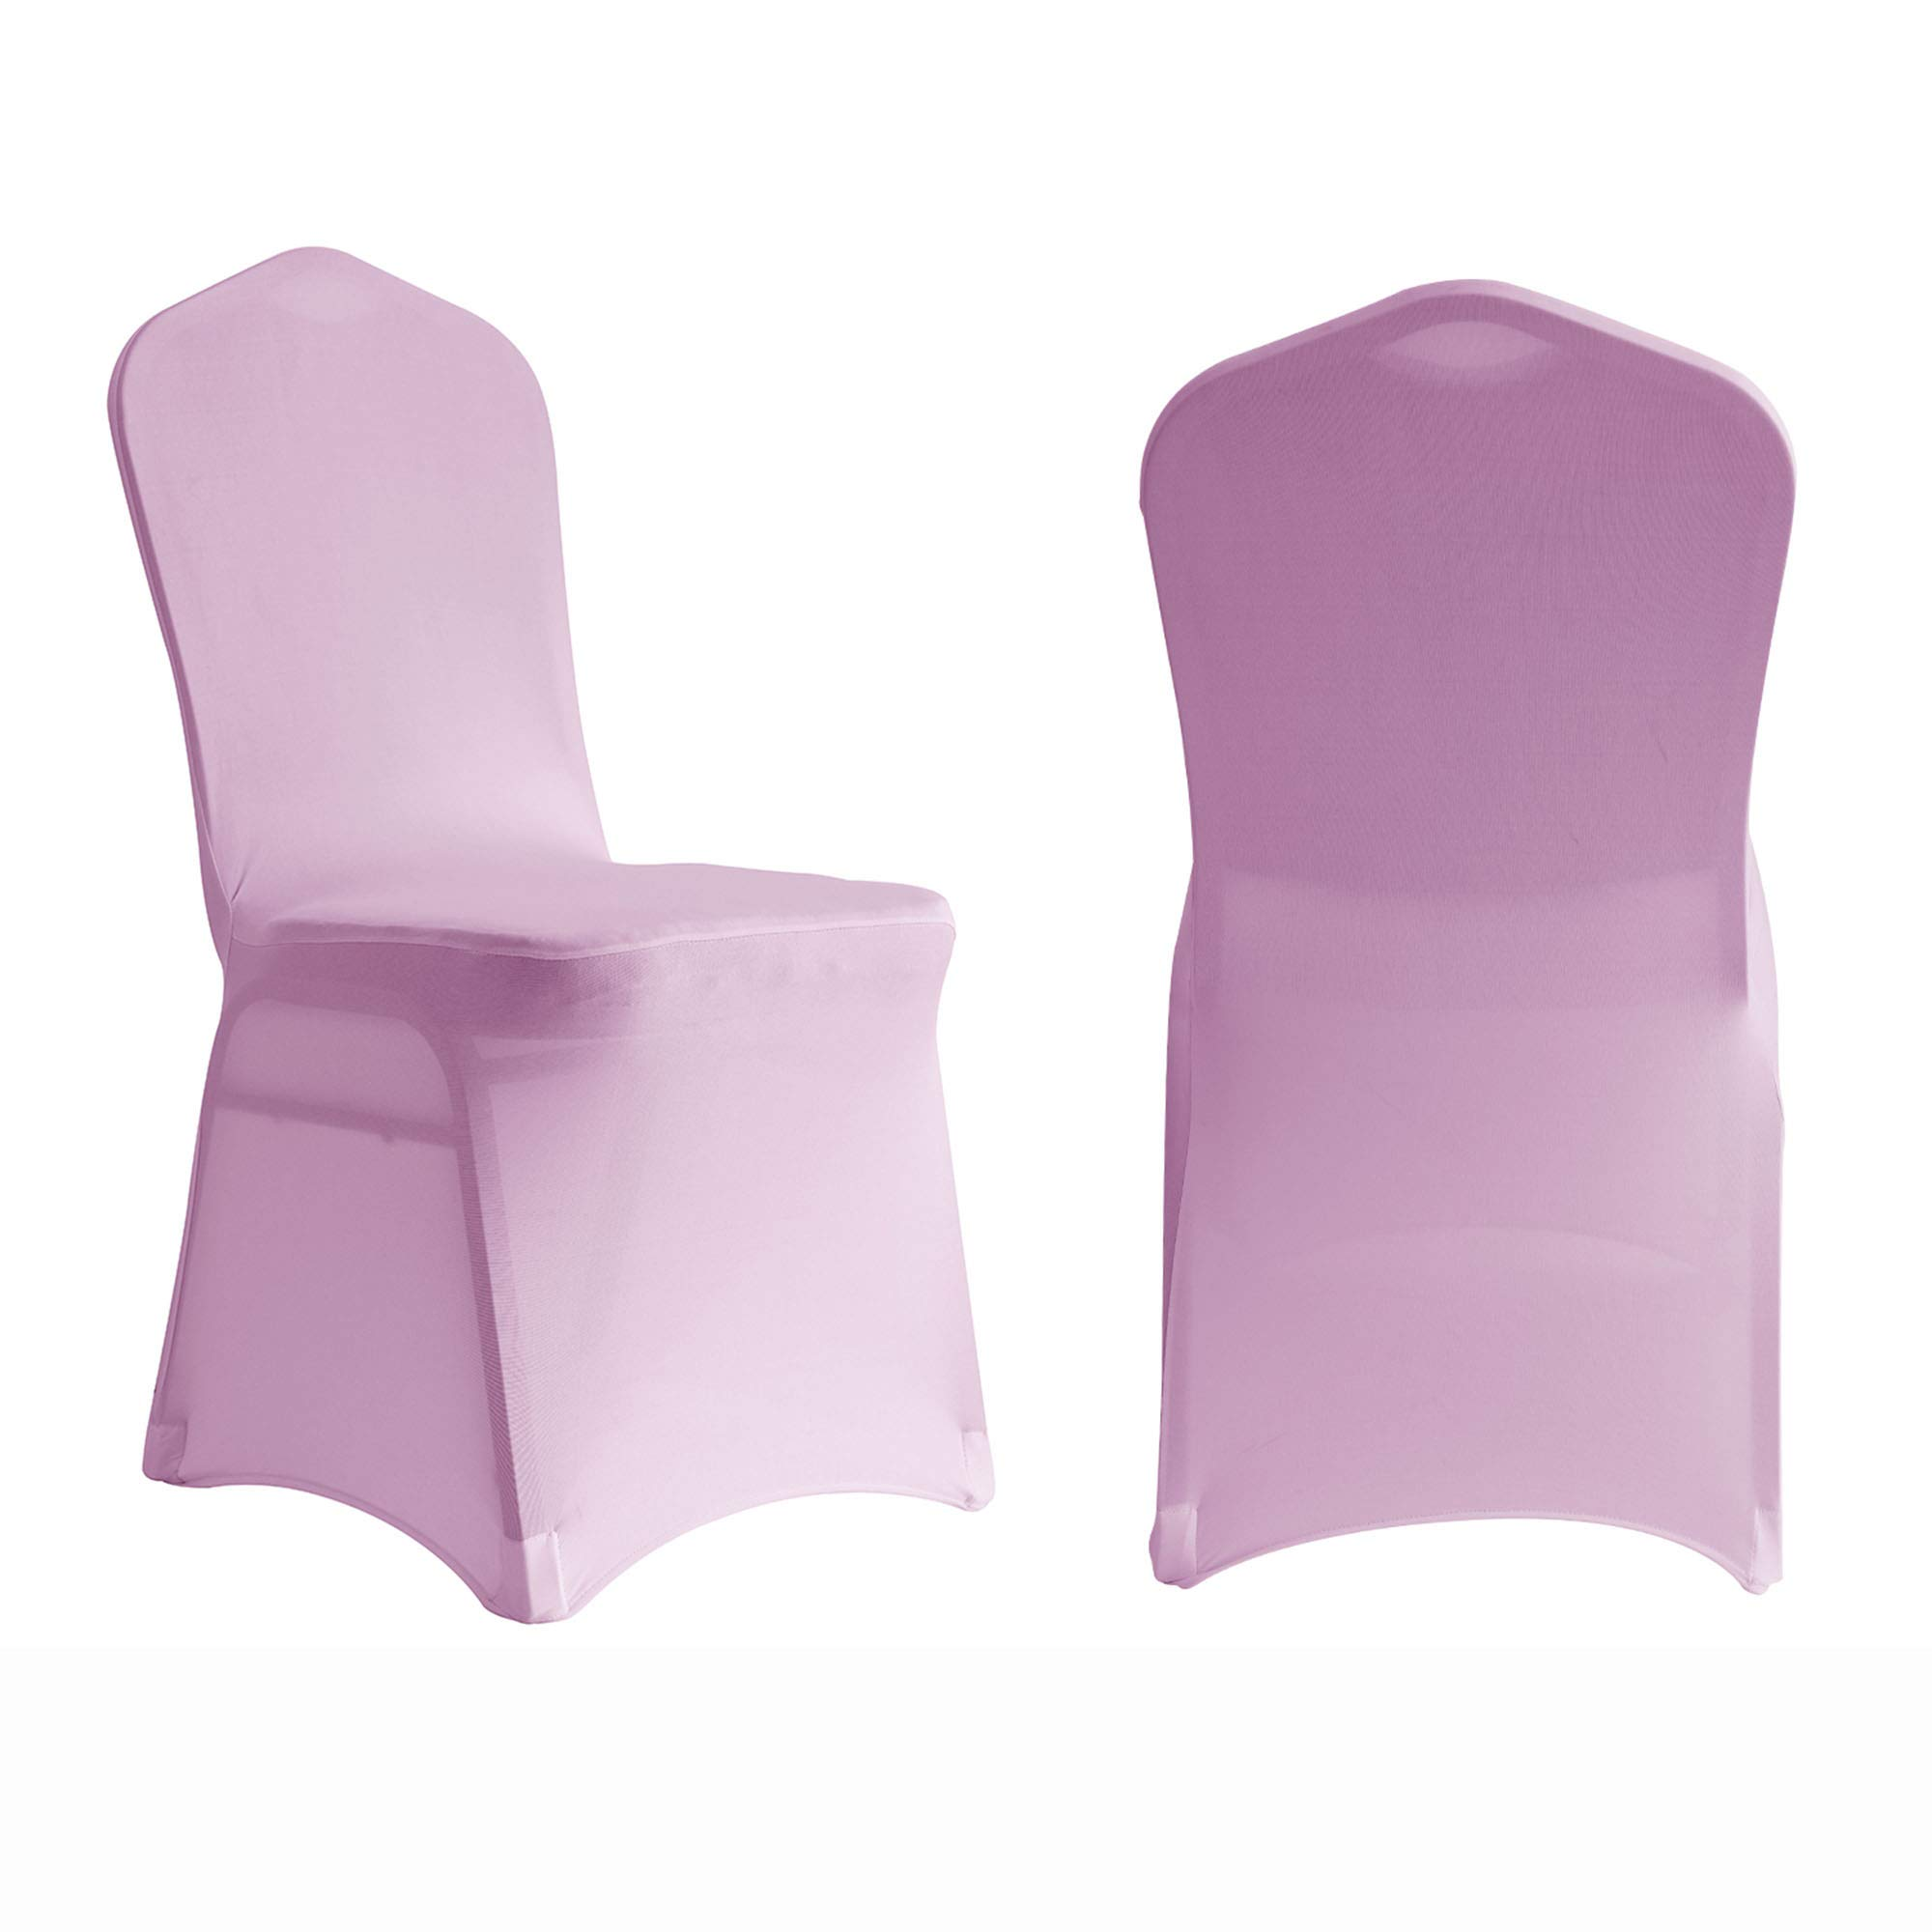 ManMengJi Chair Cover Spandex Lycra Stretch Slipcover 10 PCS, Suit for Wedding Anniversary Party Banquet, Elasticated Dining Room Chair Protector (Pink)